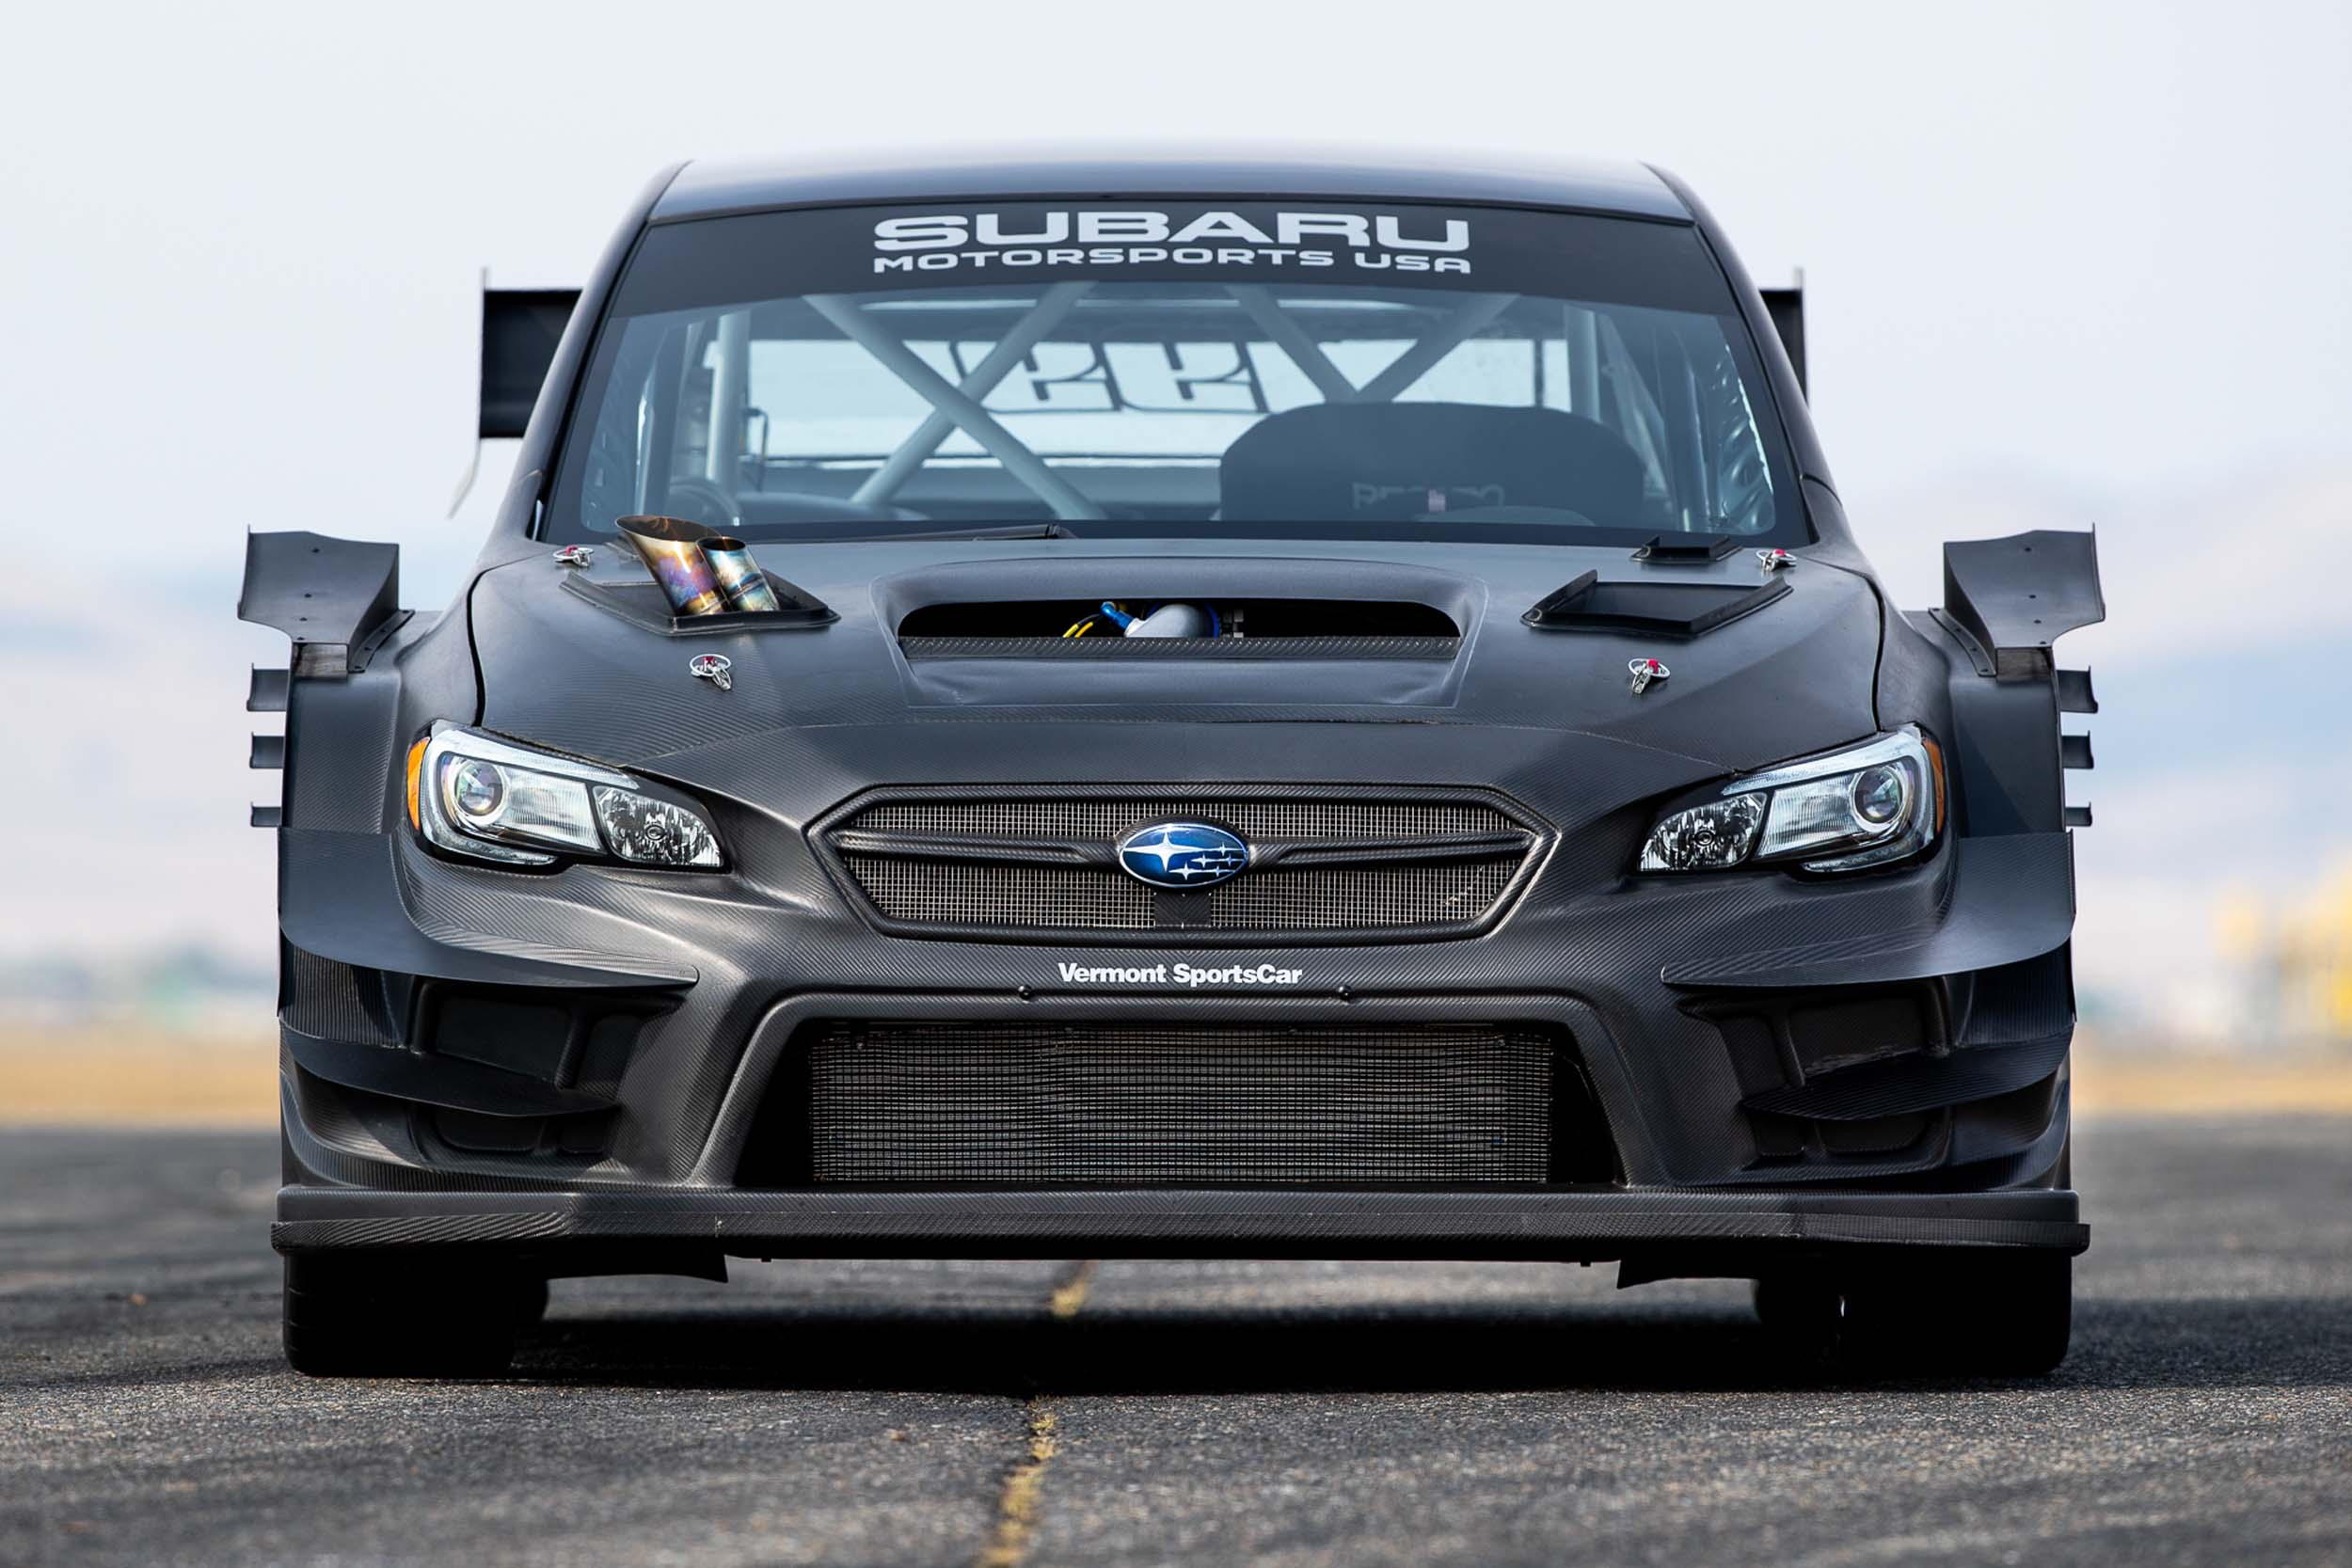 SUBARU REVEALS THE WILDEST WRX STI EVER- TRAVIS PASTRANA'S GYMKHANA STI